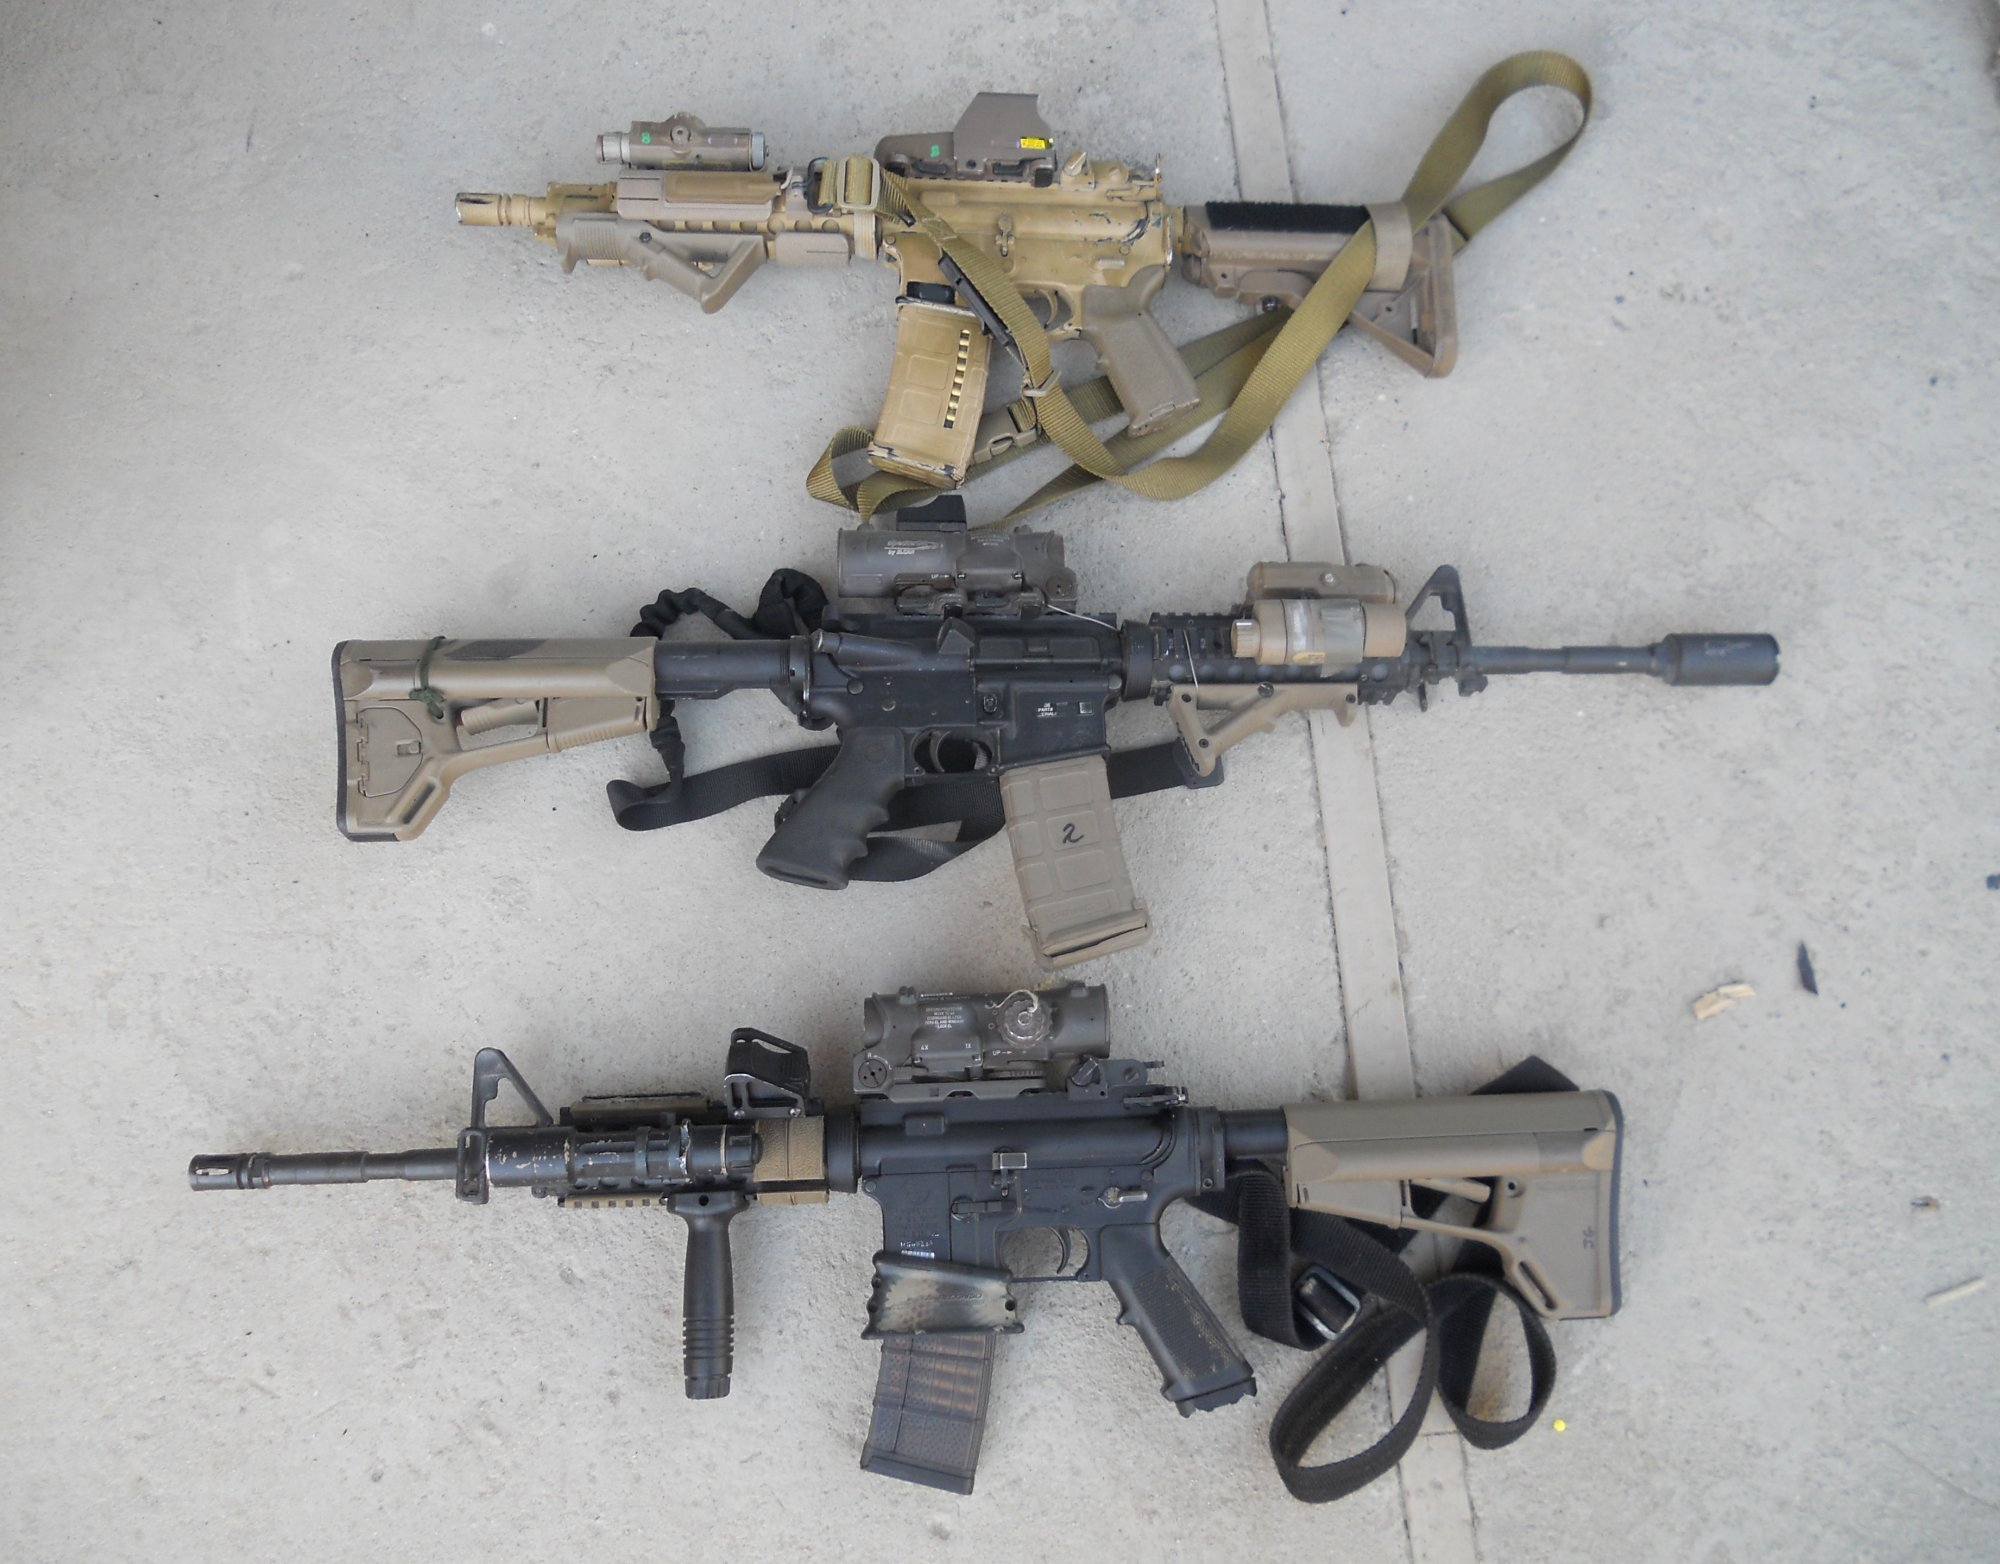 How Special Operations Soldiers Setup Their AR-15's